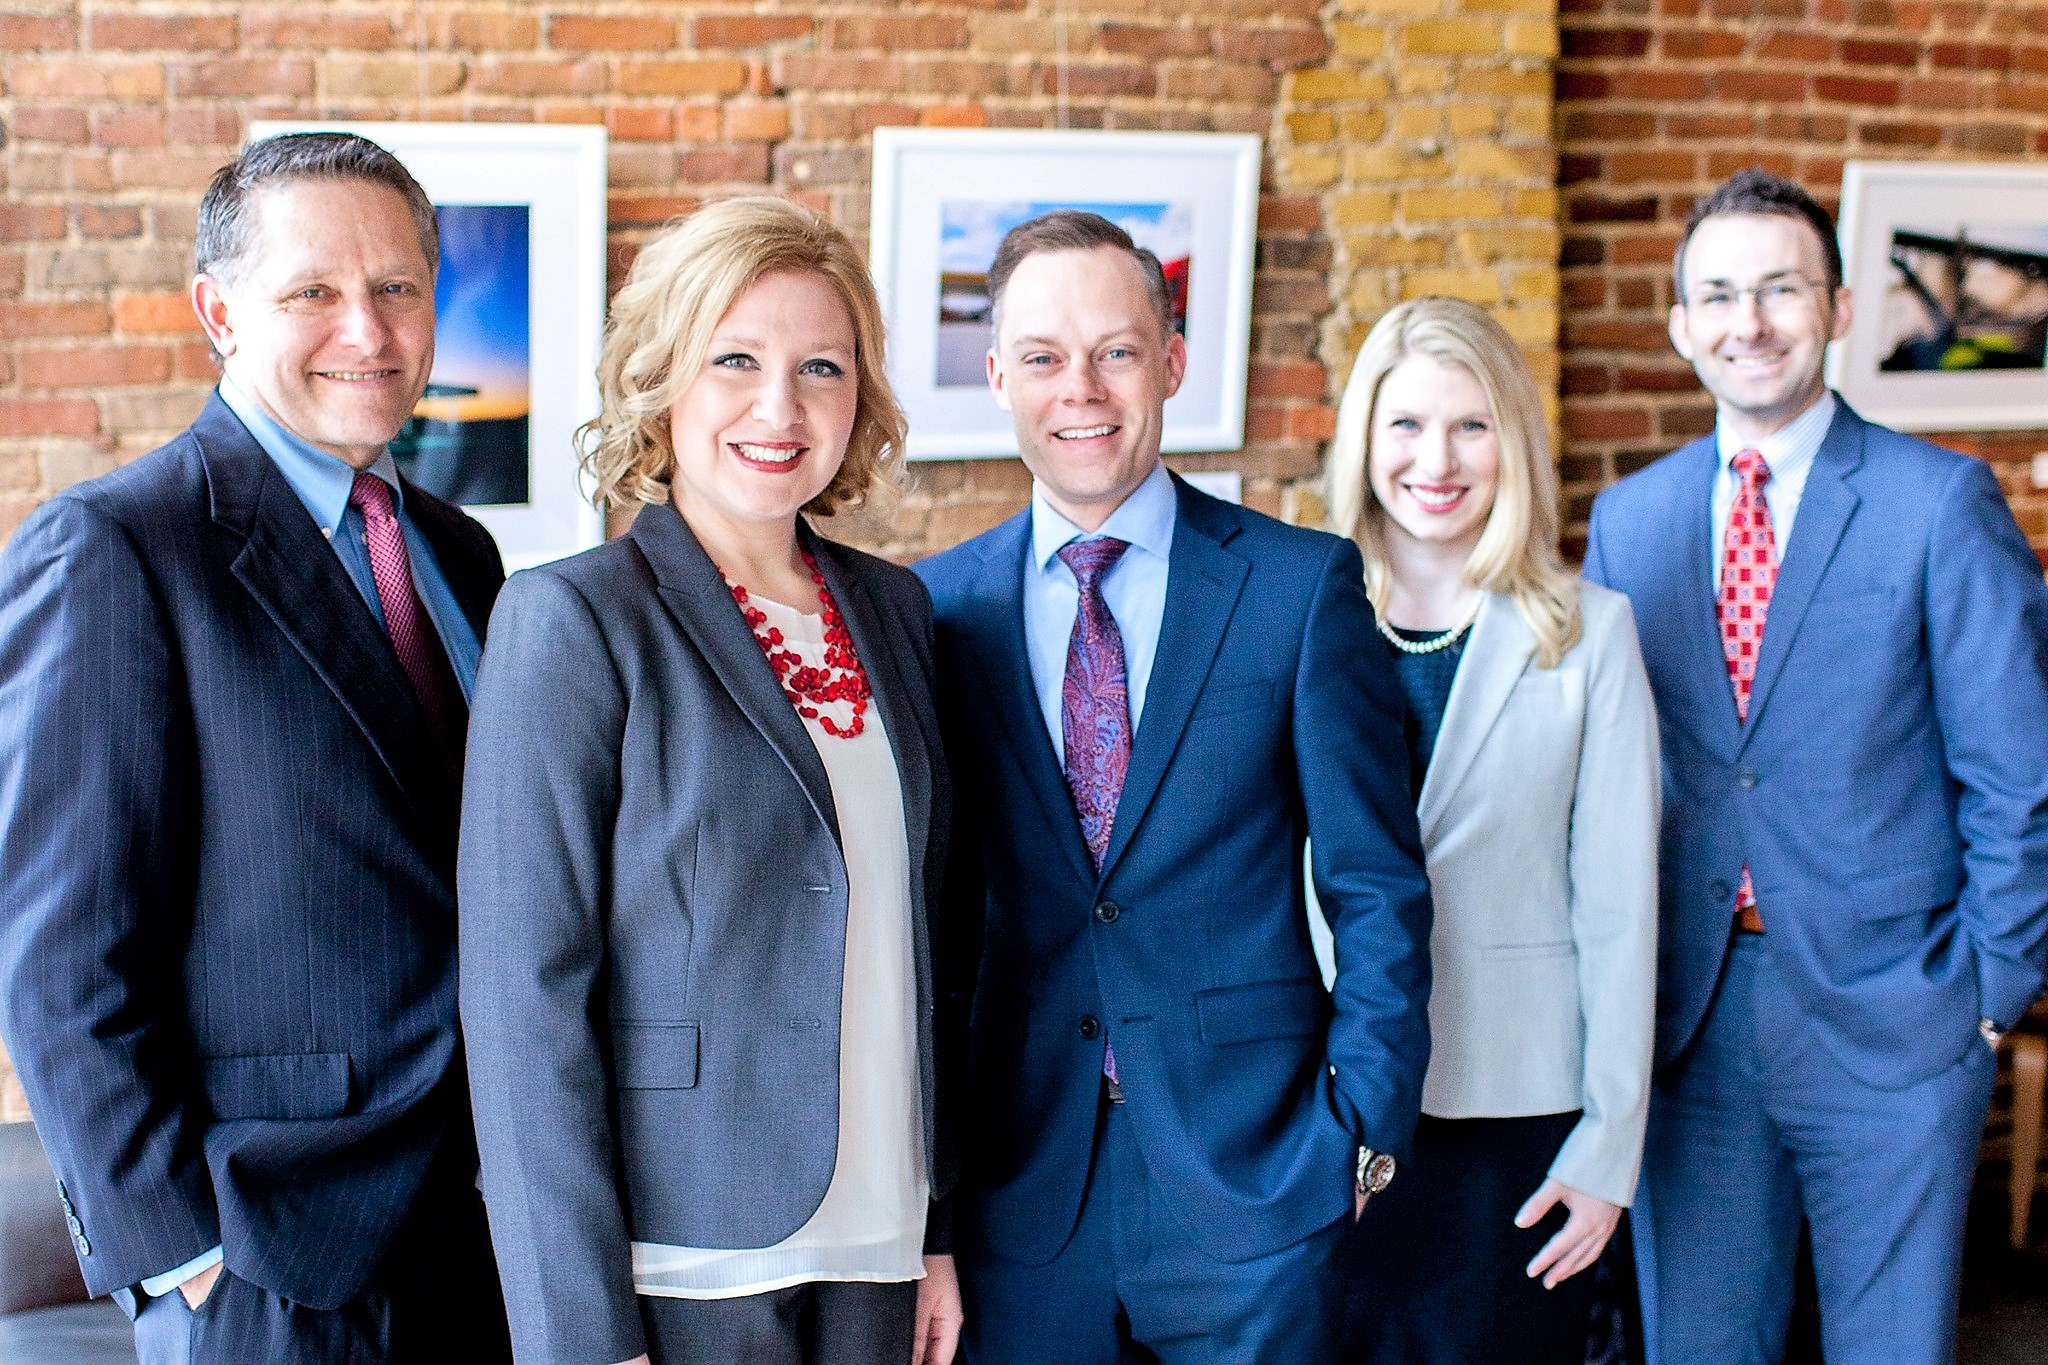 From left to right: Danielle R. Kerckhoff, Heather Rooney McBride, Scott A. Smith and Nicole D. Lindsey